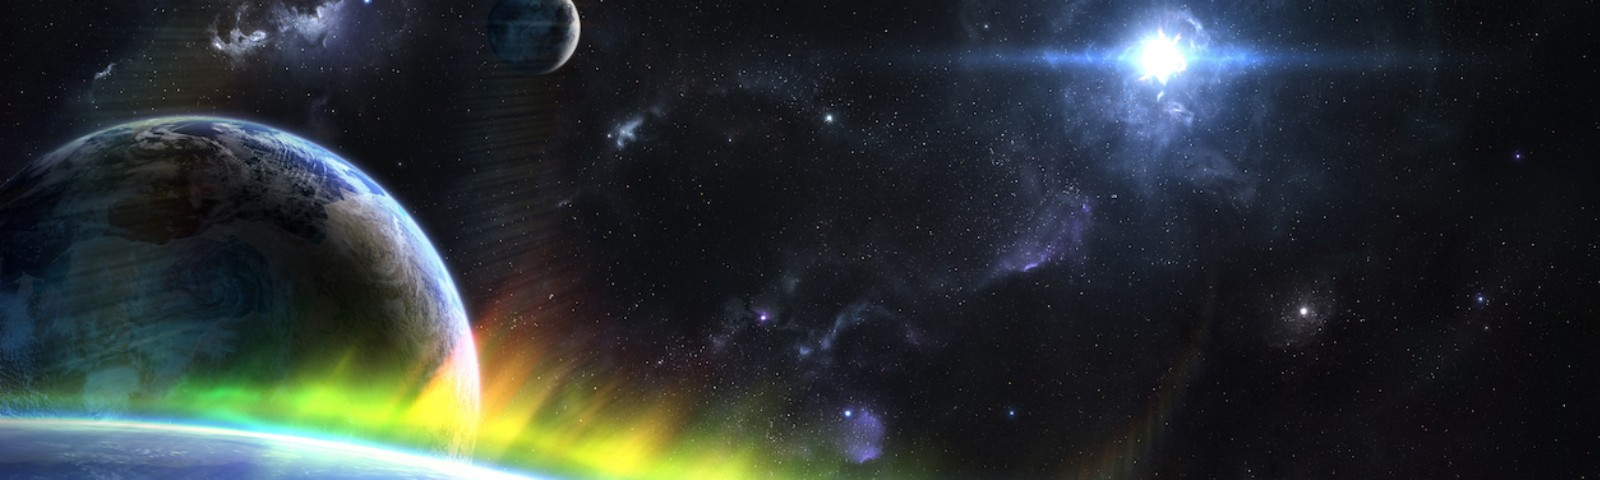 An Earth-like planet with bright green, yellow and red aurora, with planets, stars, and nebulae in the background.